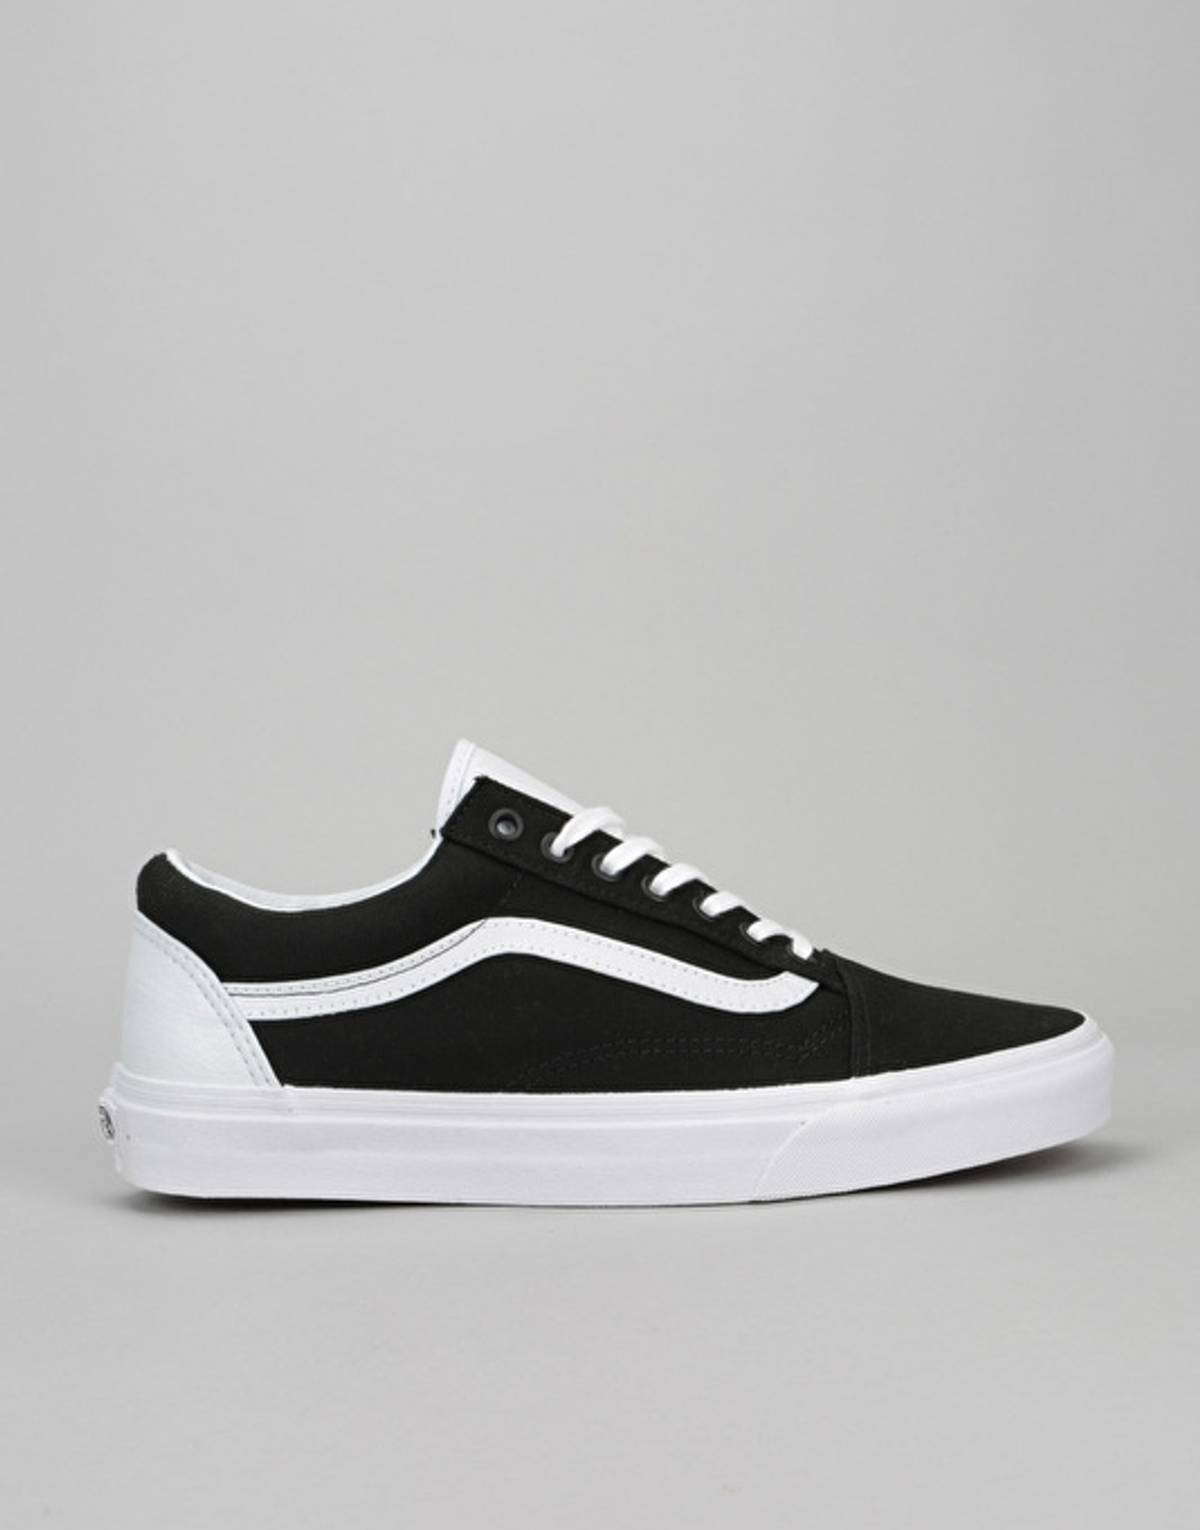 dfe1d11deb1 Vans Vans Old Skool College Black White Foot Locker Exclusive EU42 UK8 US9  Size 9 - Low-Top Sneakers for Sale - Grailed